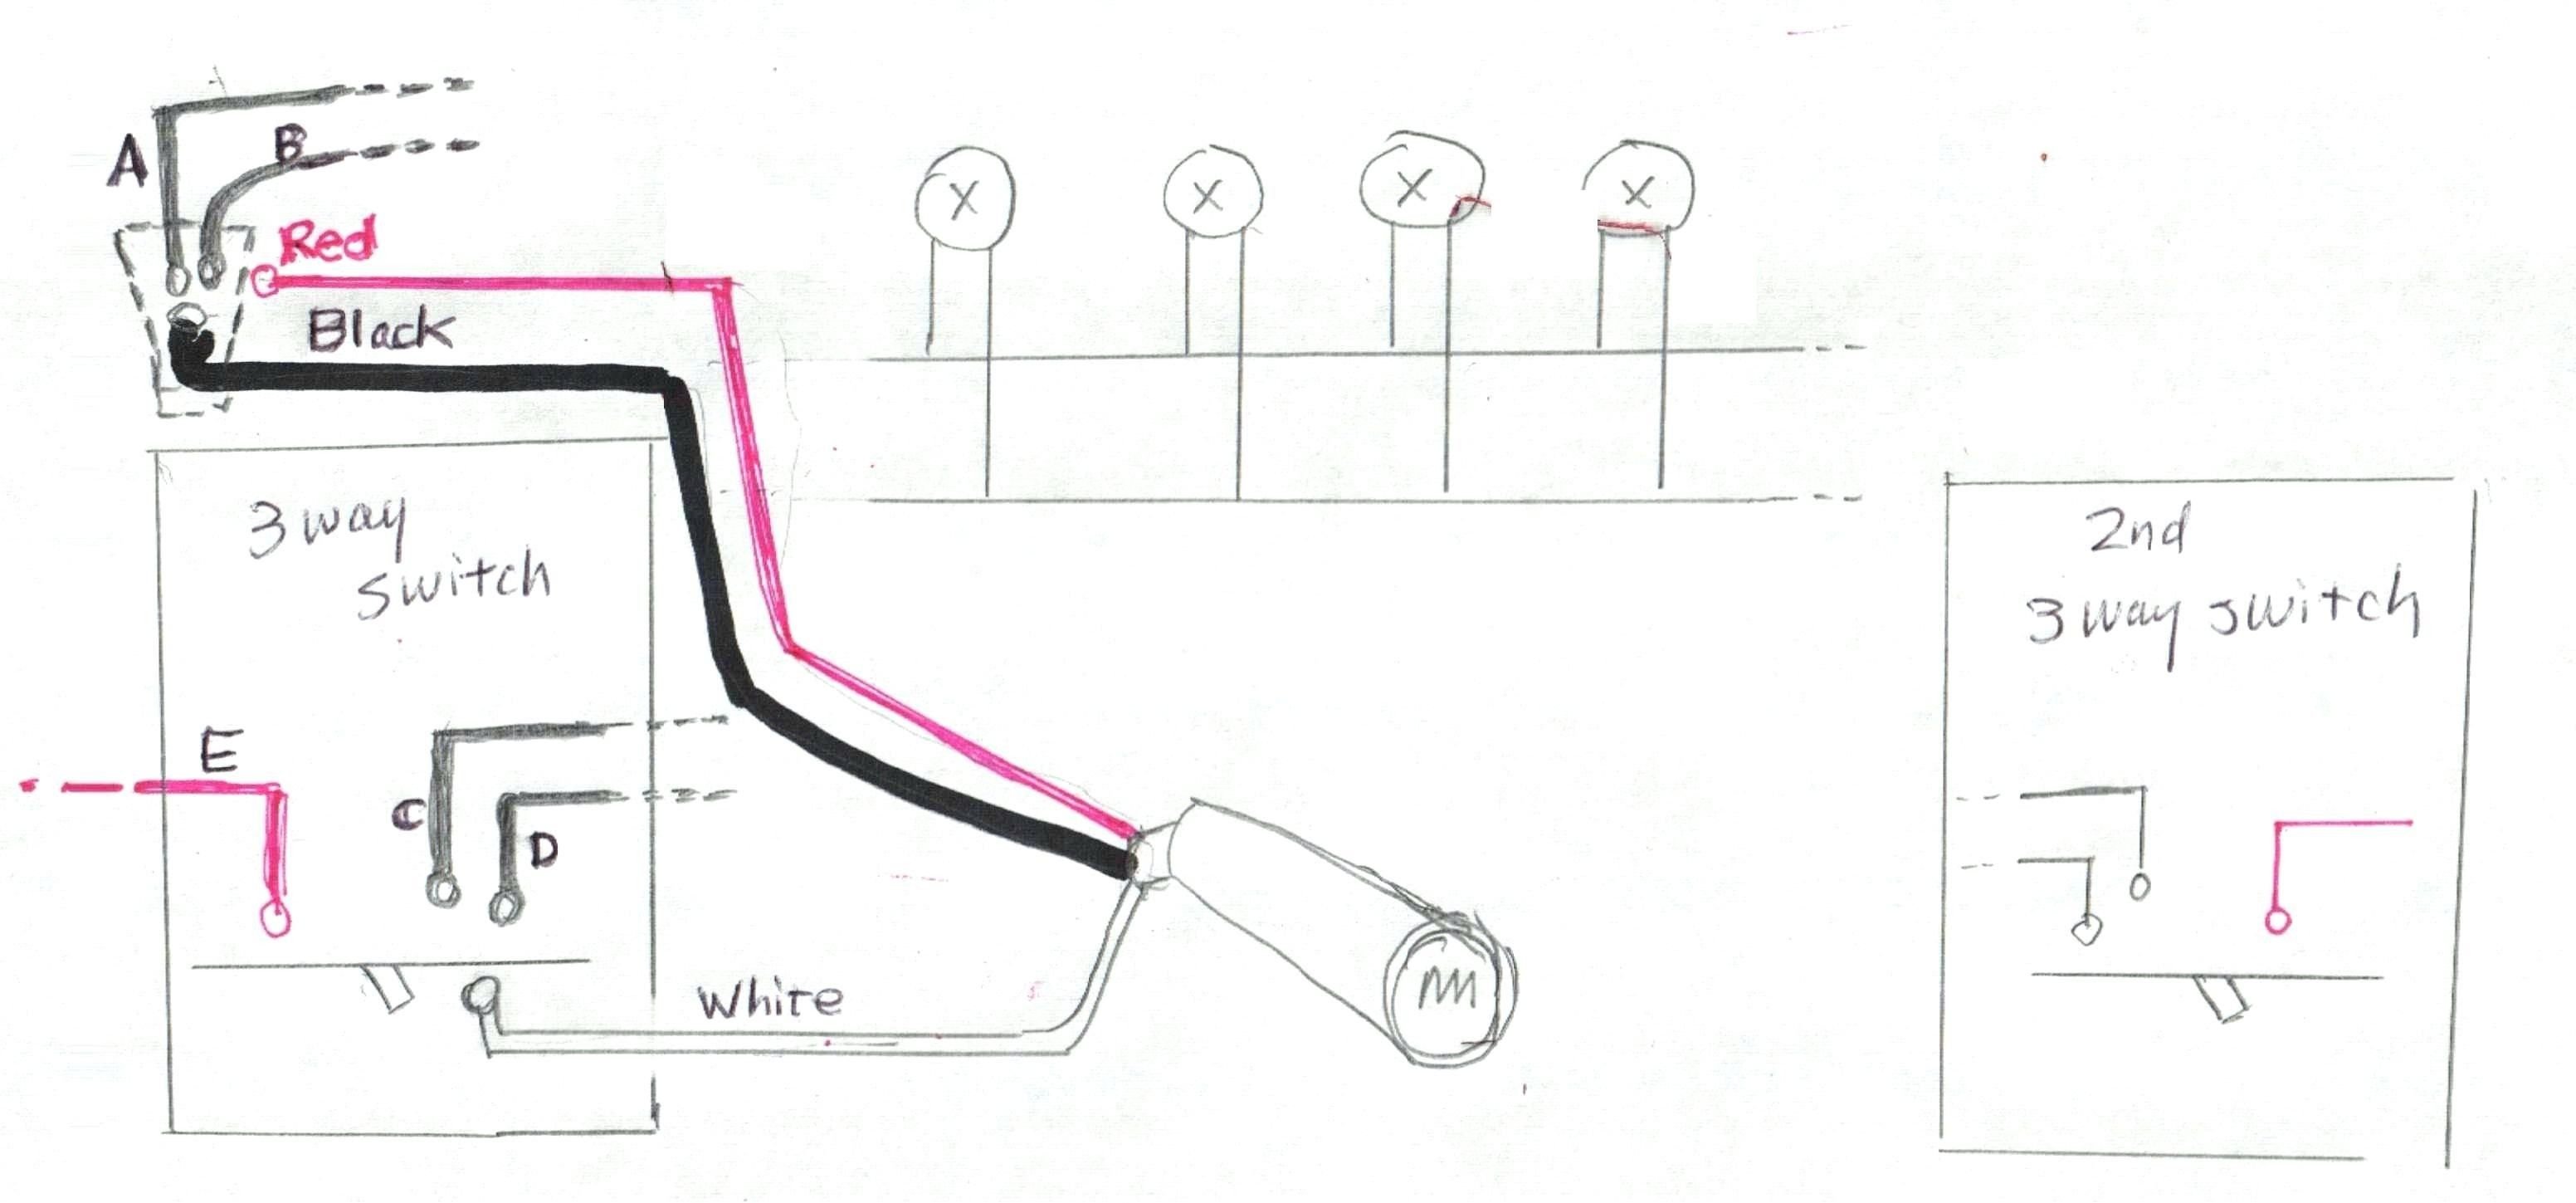 Wiring Diagram For Hogtunes Amp Con Imagenes